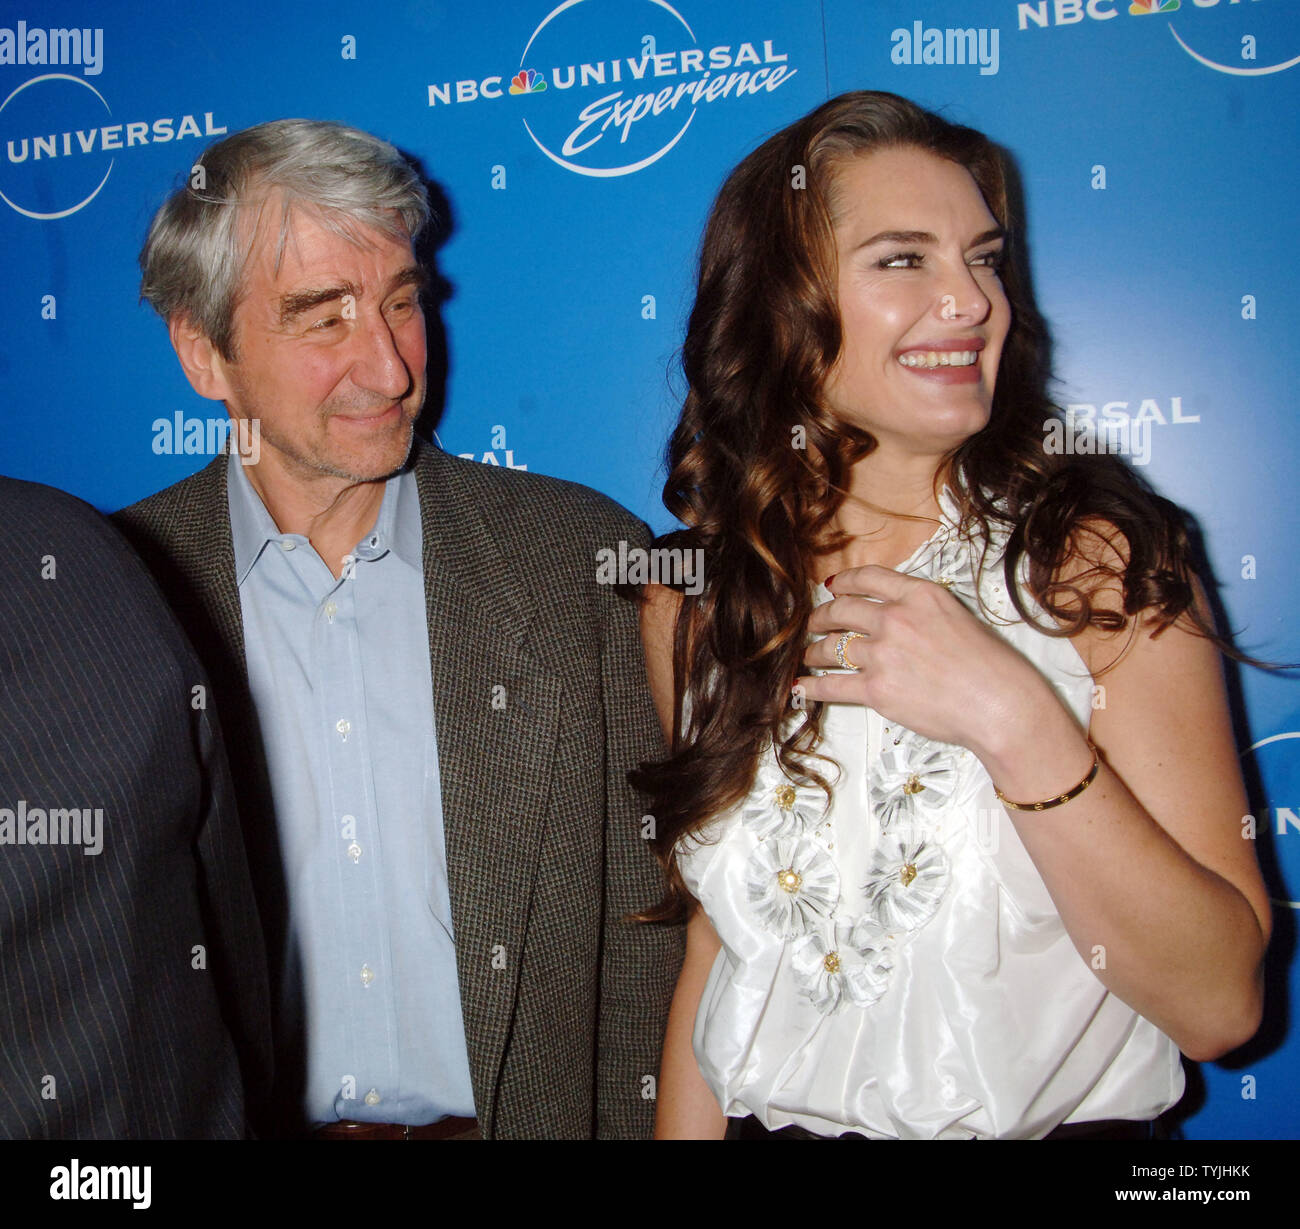 Actor Sam Waterston of the tv series: Law and Order and